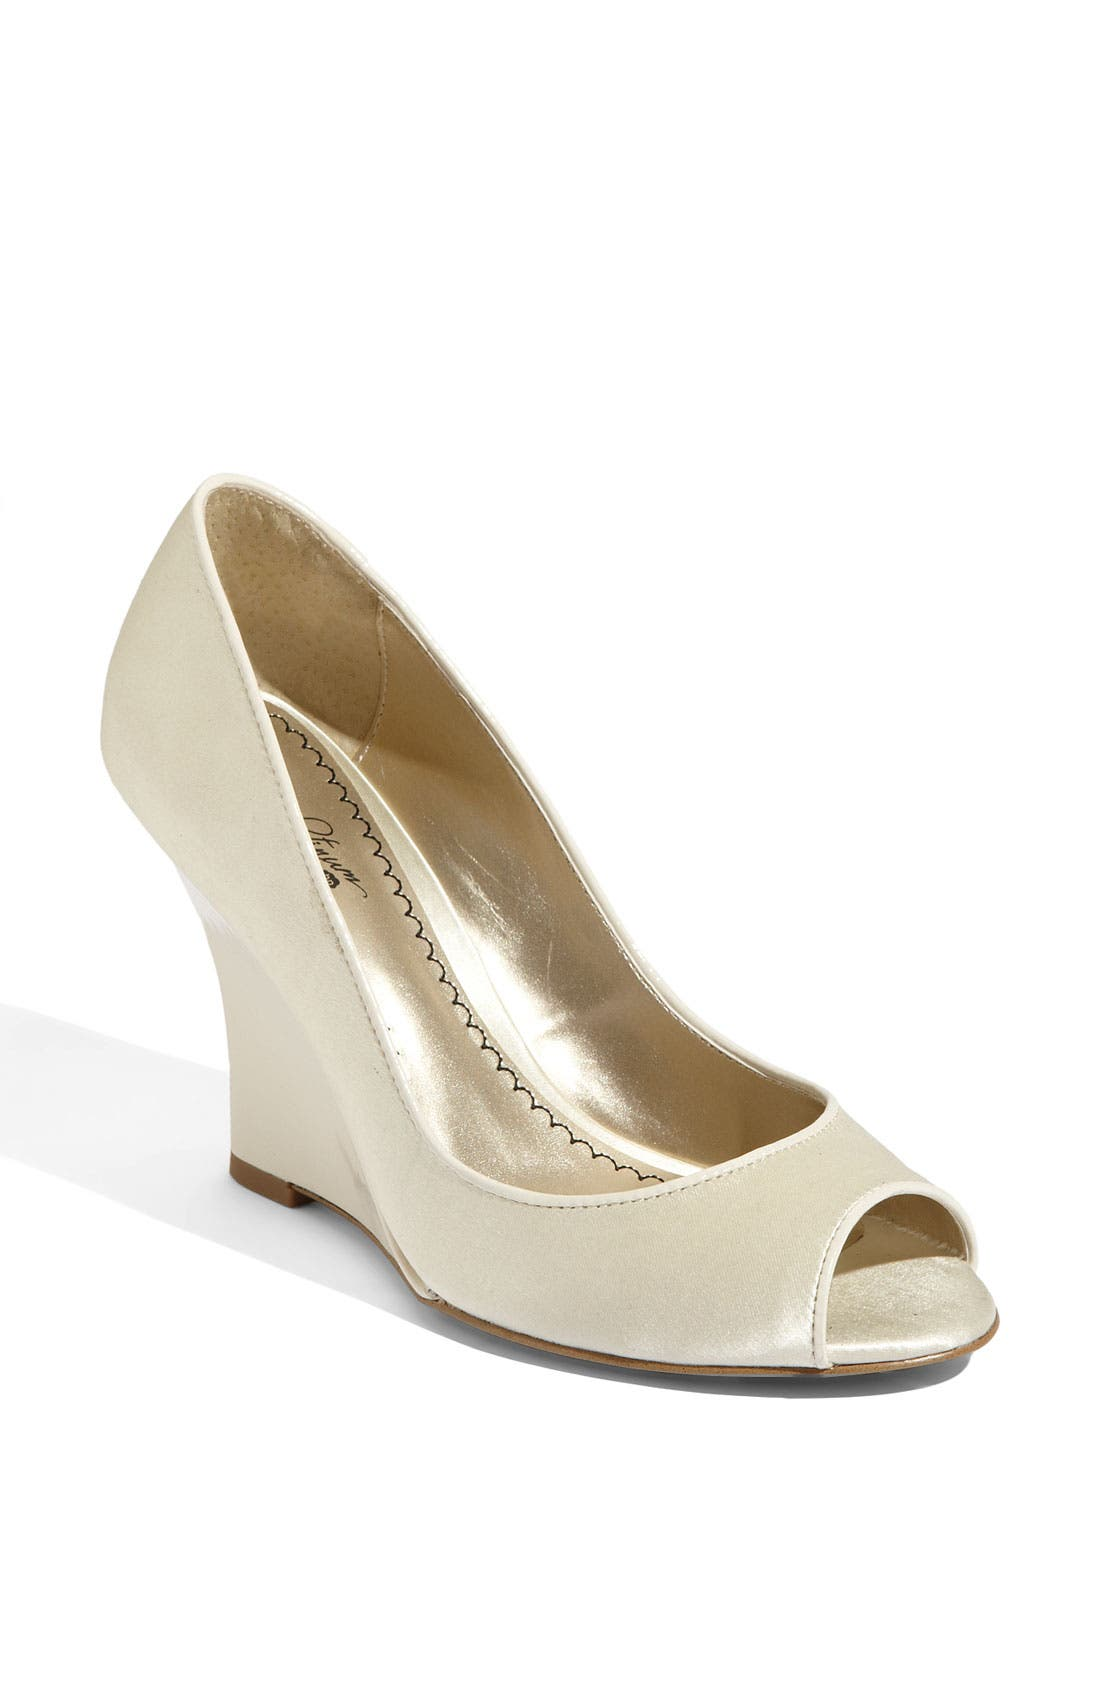 Main Image - BP. 'Fae' Satin Wedge Pump